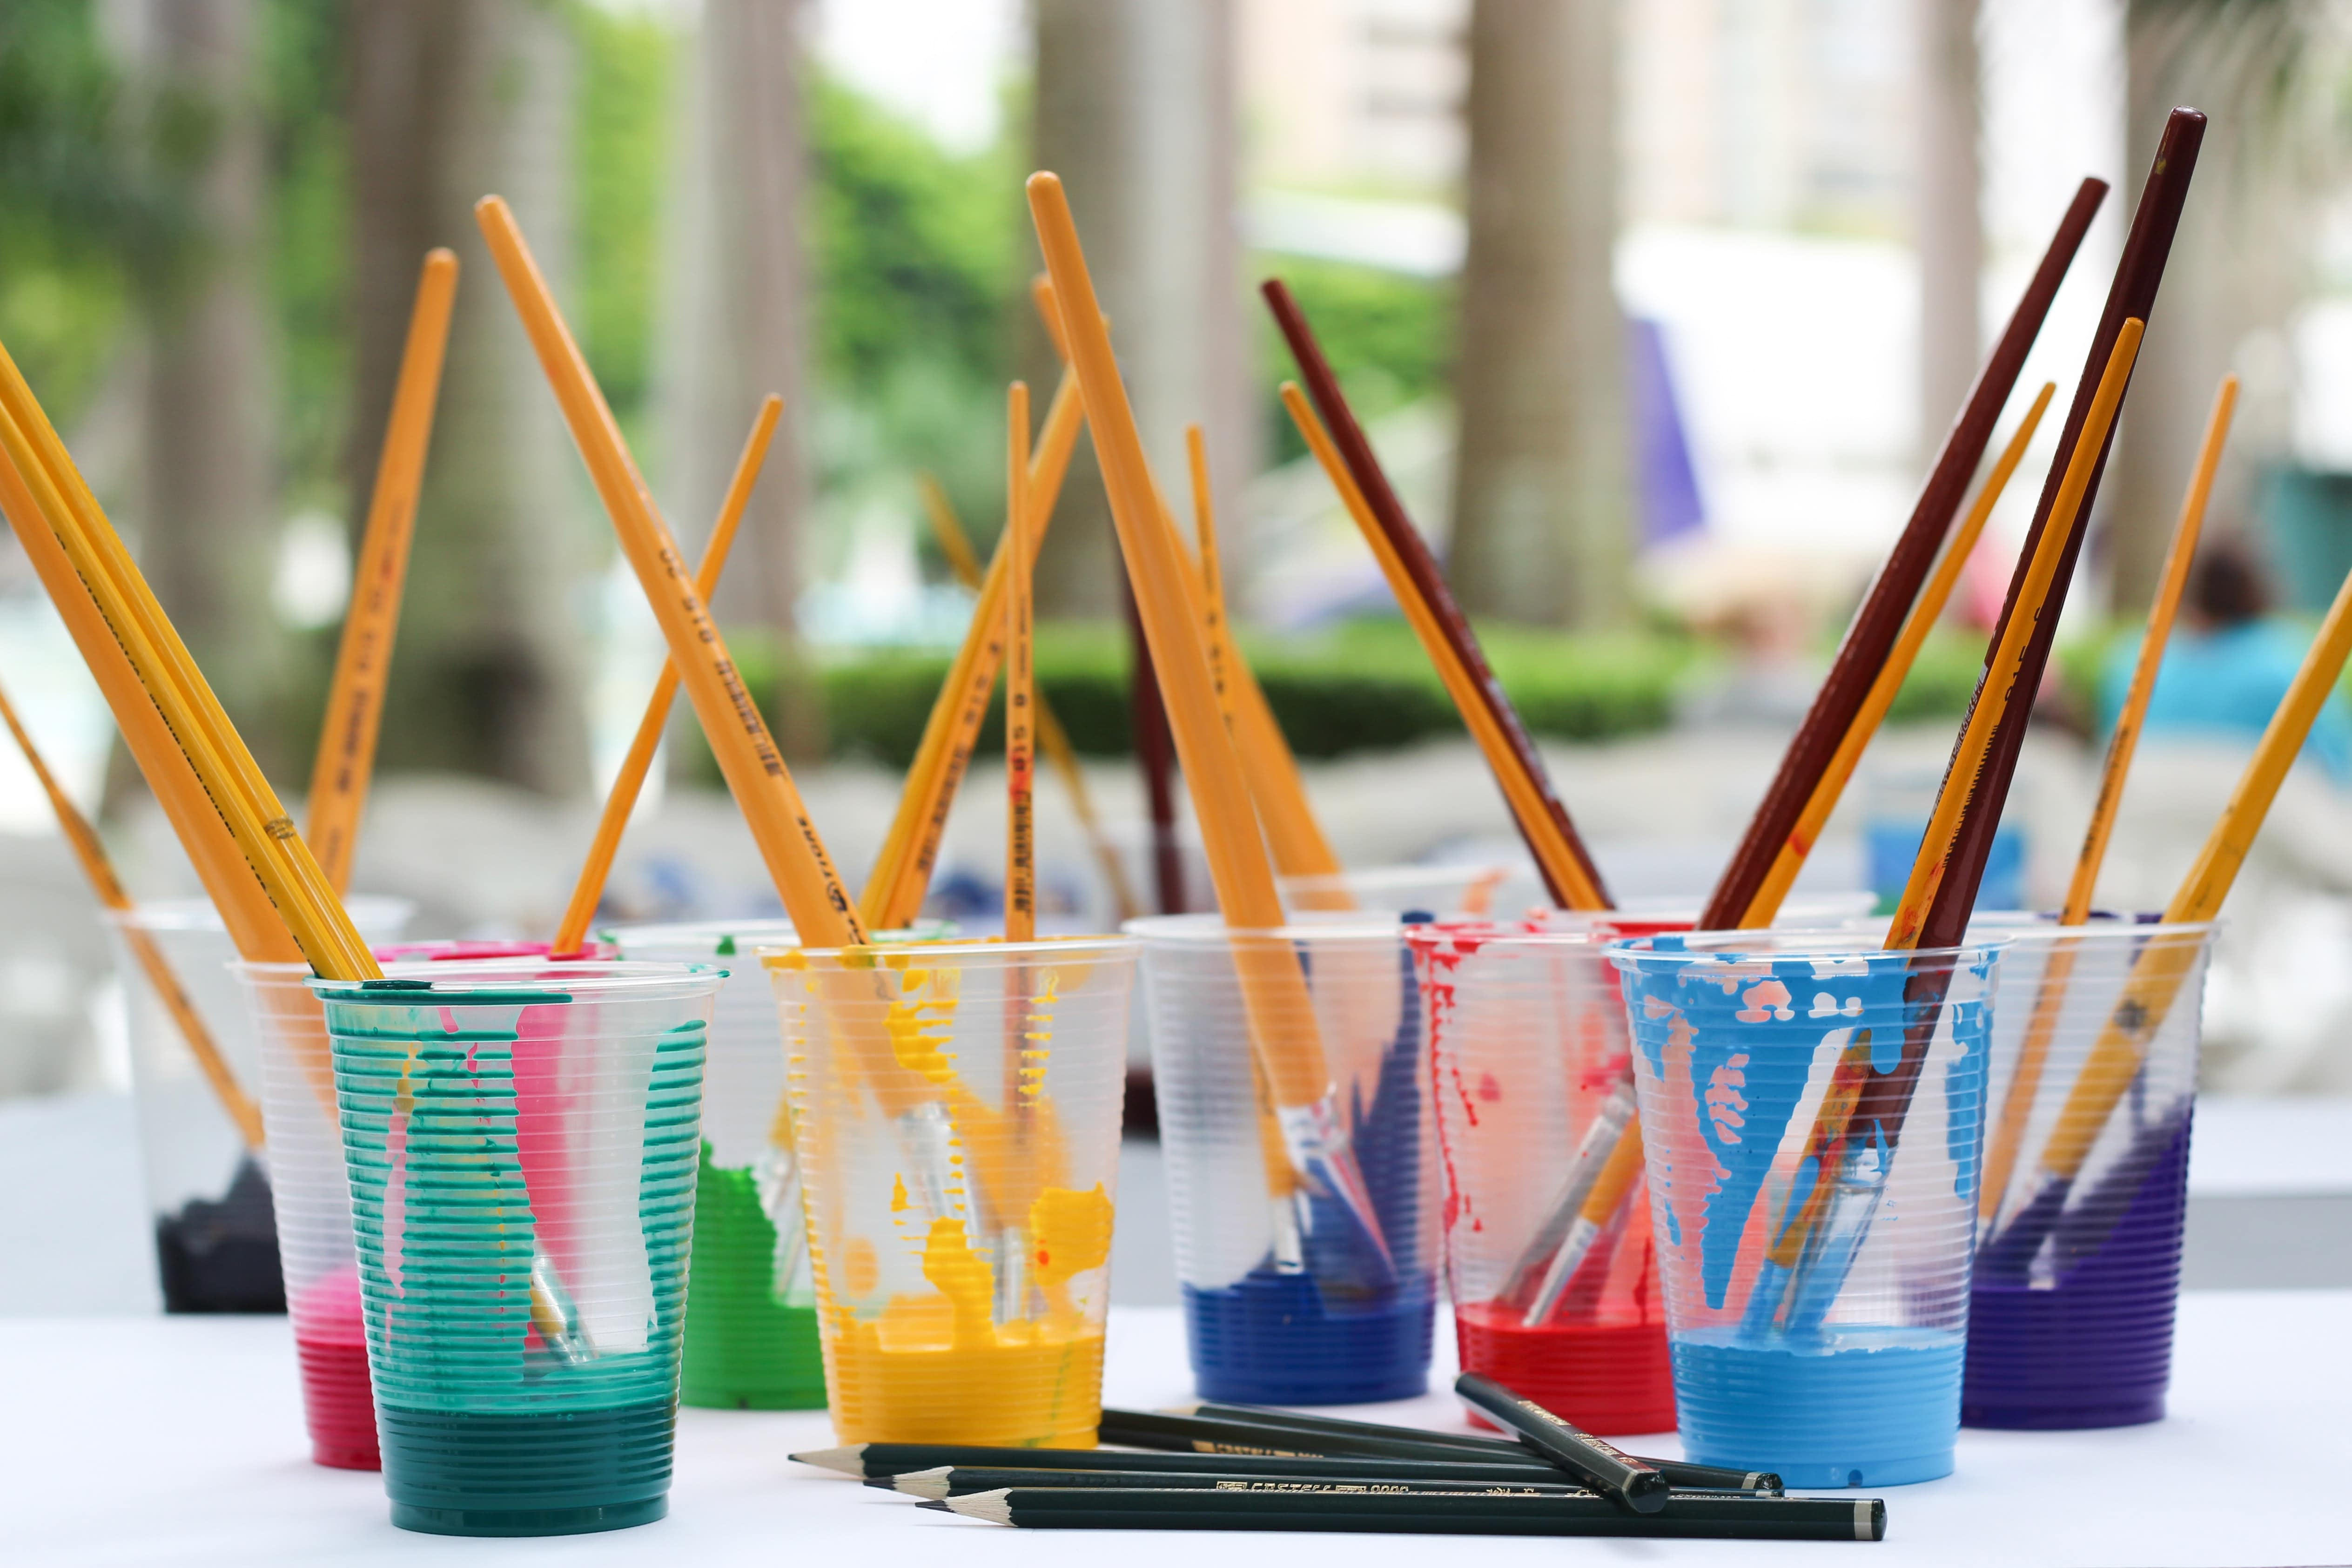 Cups of different colors of paint and brushes sit on a table